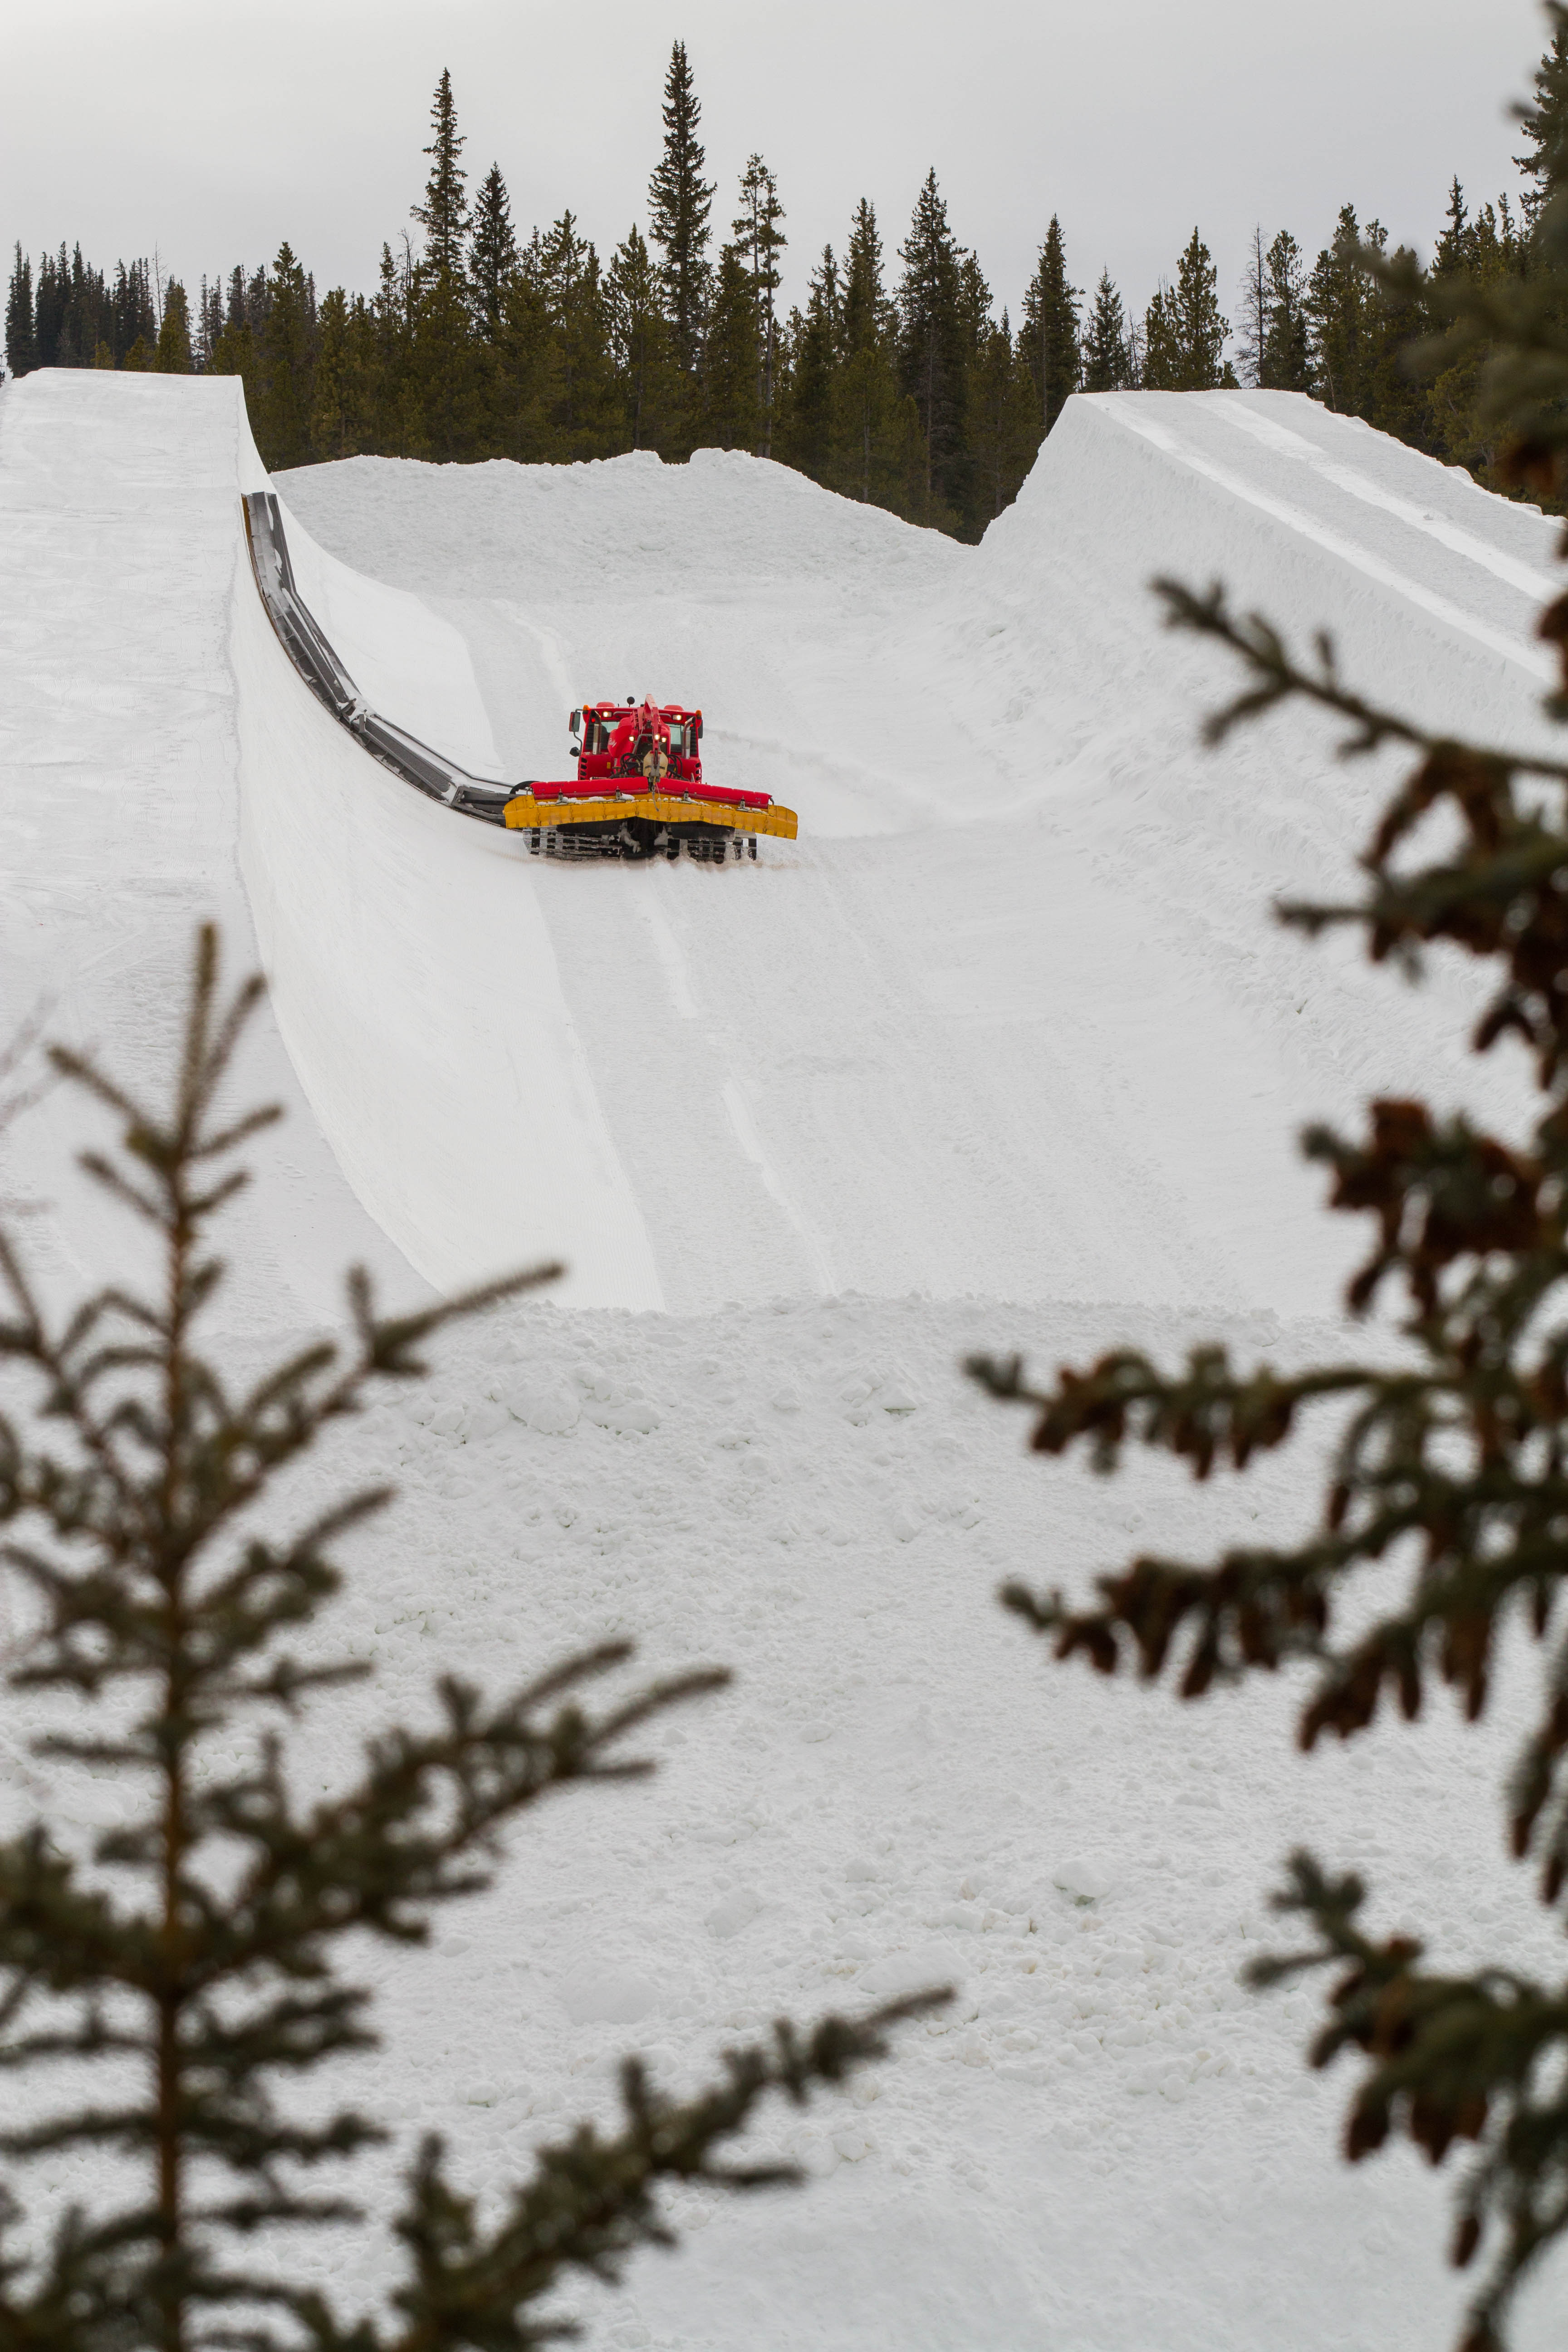 A snowcat works on the halfpipe at Copper Mountain in Colorado